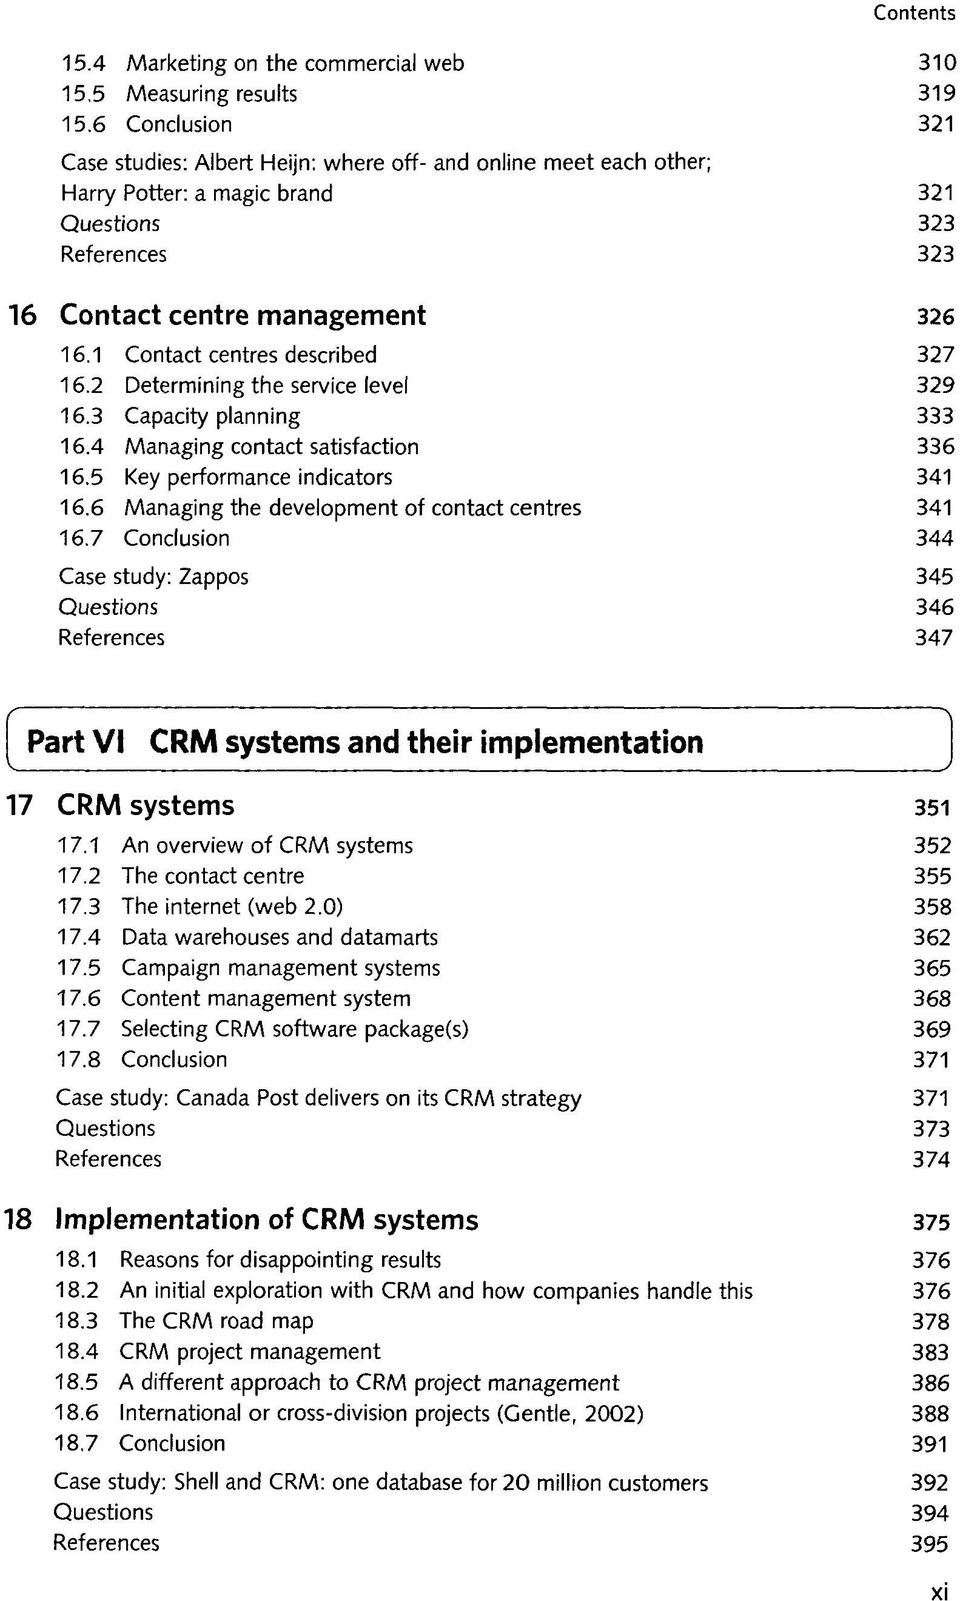 "customer relationship management ed peelen Ed peelen (2009), ""customer relationship management"", dorling kindersley ( india) pvt ltd, india ❖ gautham chatterjea (2005), ""complied thoughts customer relationship management"", rupa & co, new delhi ❖ gosney, thomas (2003), ""customer relationship management essentials"", prentice- hall of india private."